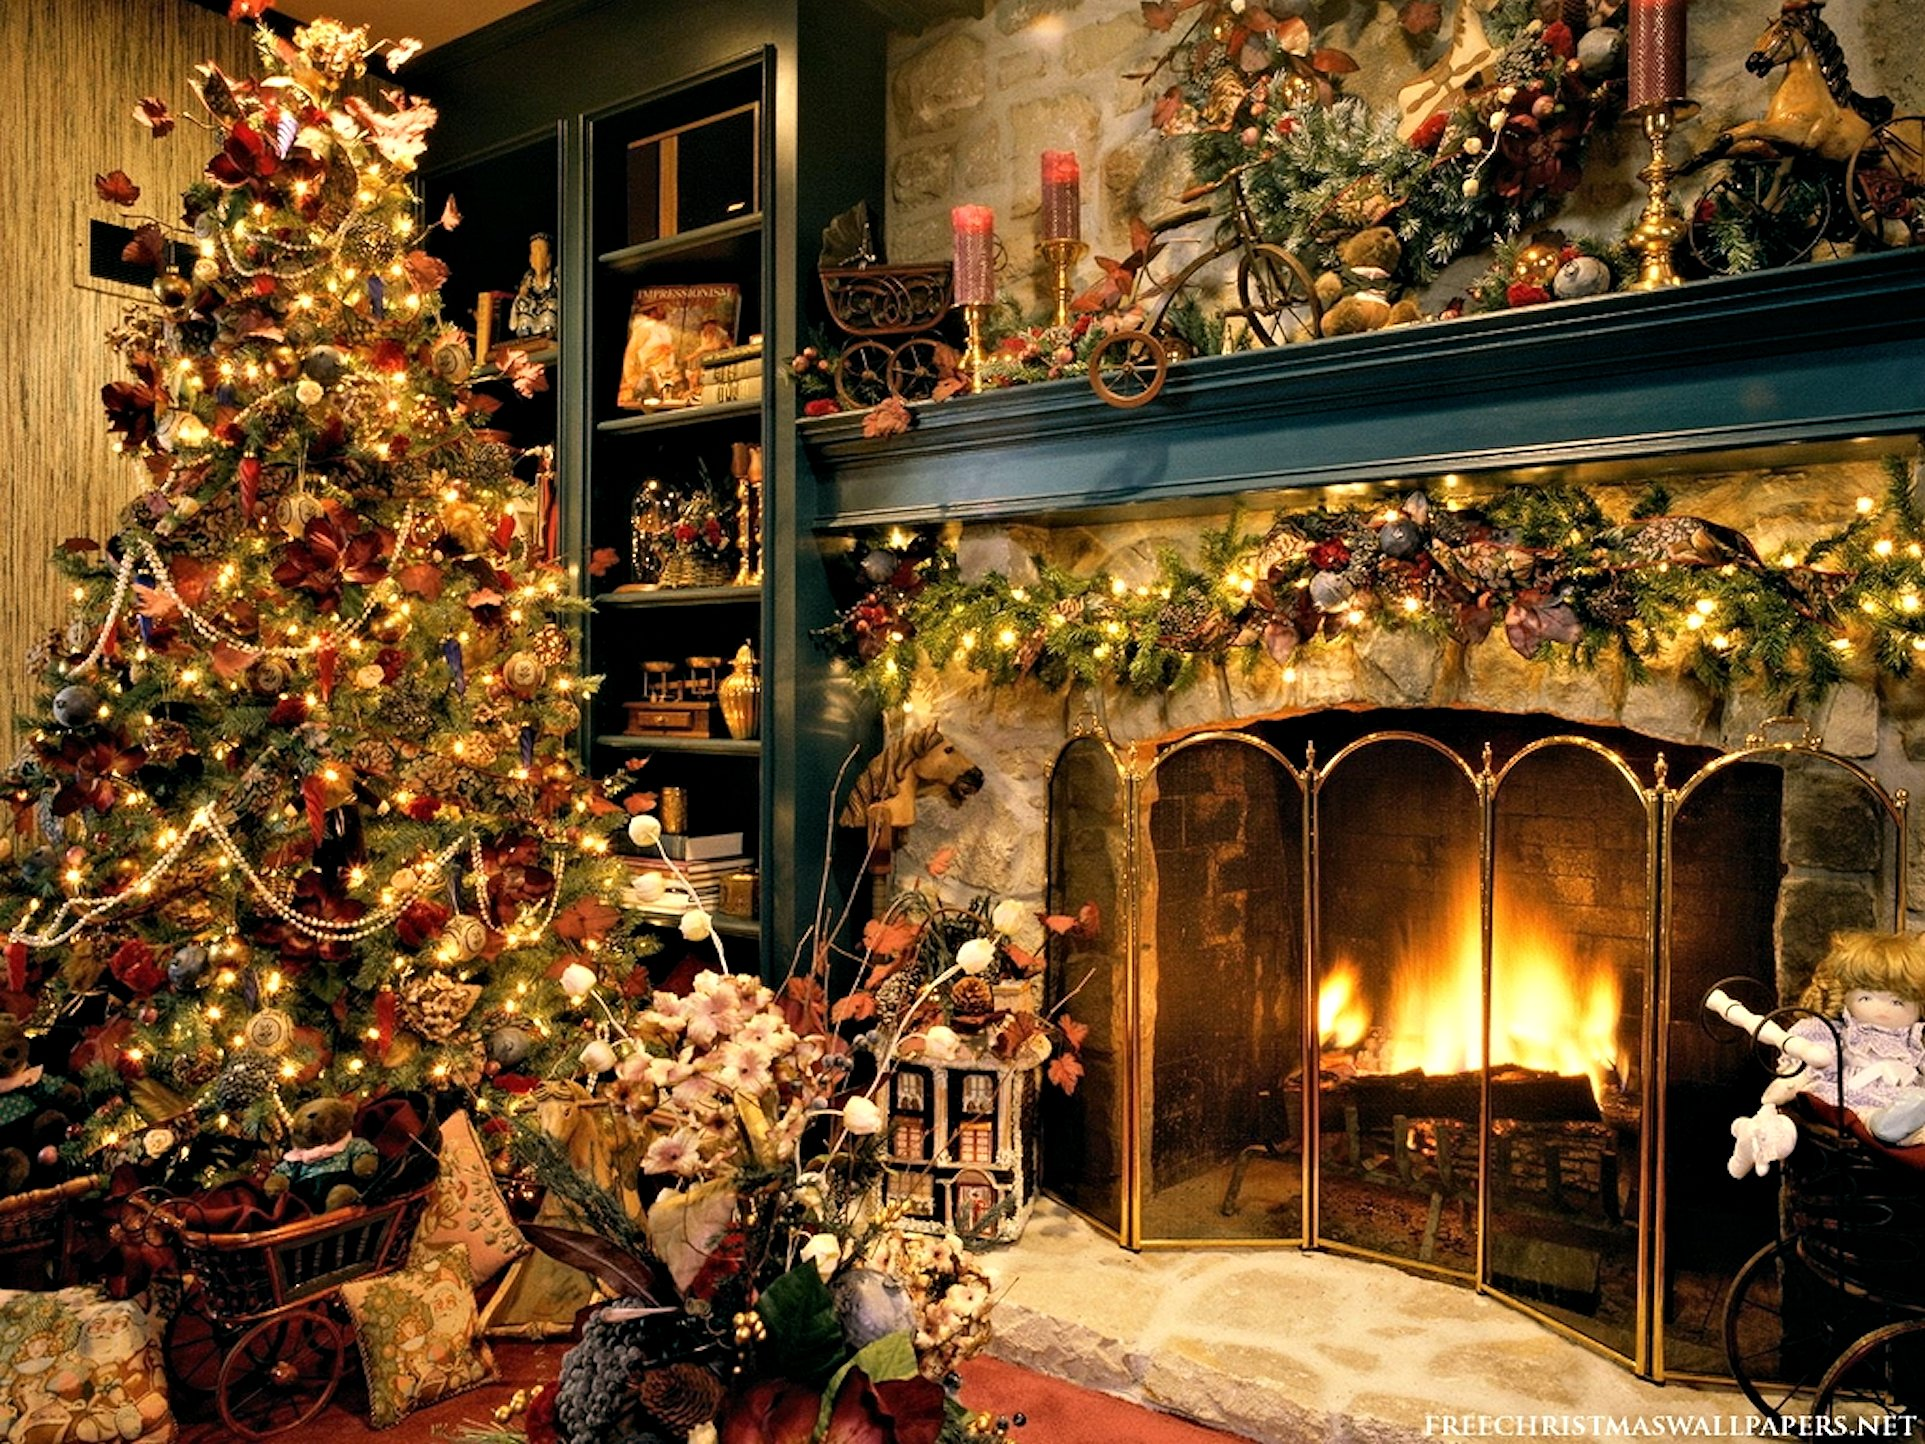 Christmas Desktop Wallpapers Fireplace Pictures 1925x1444